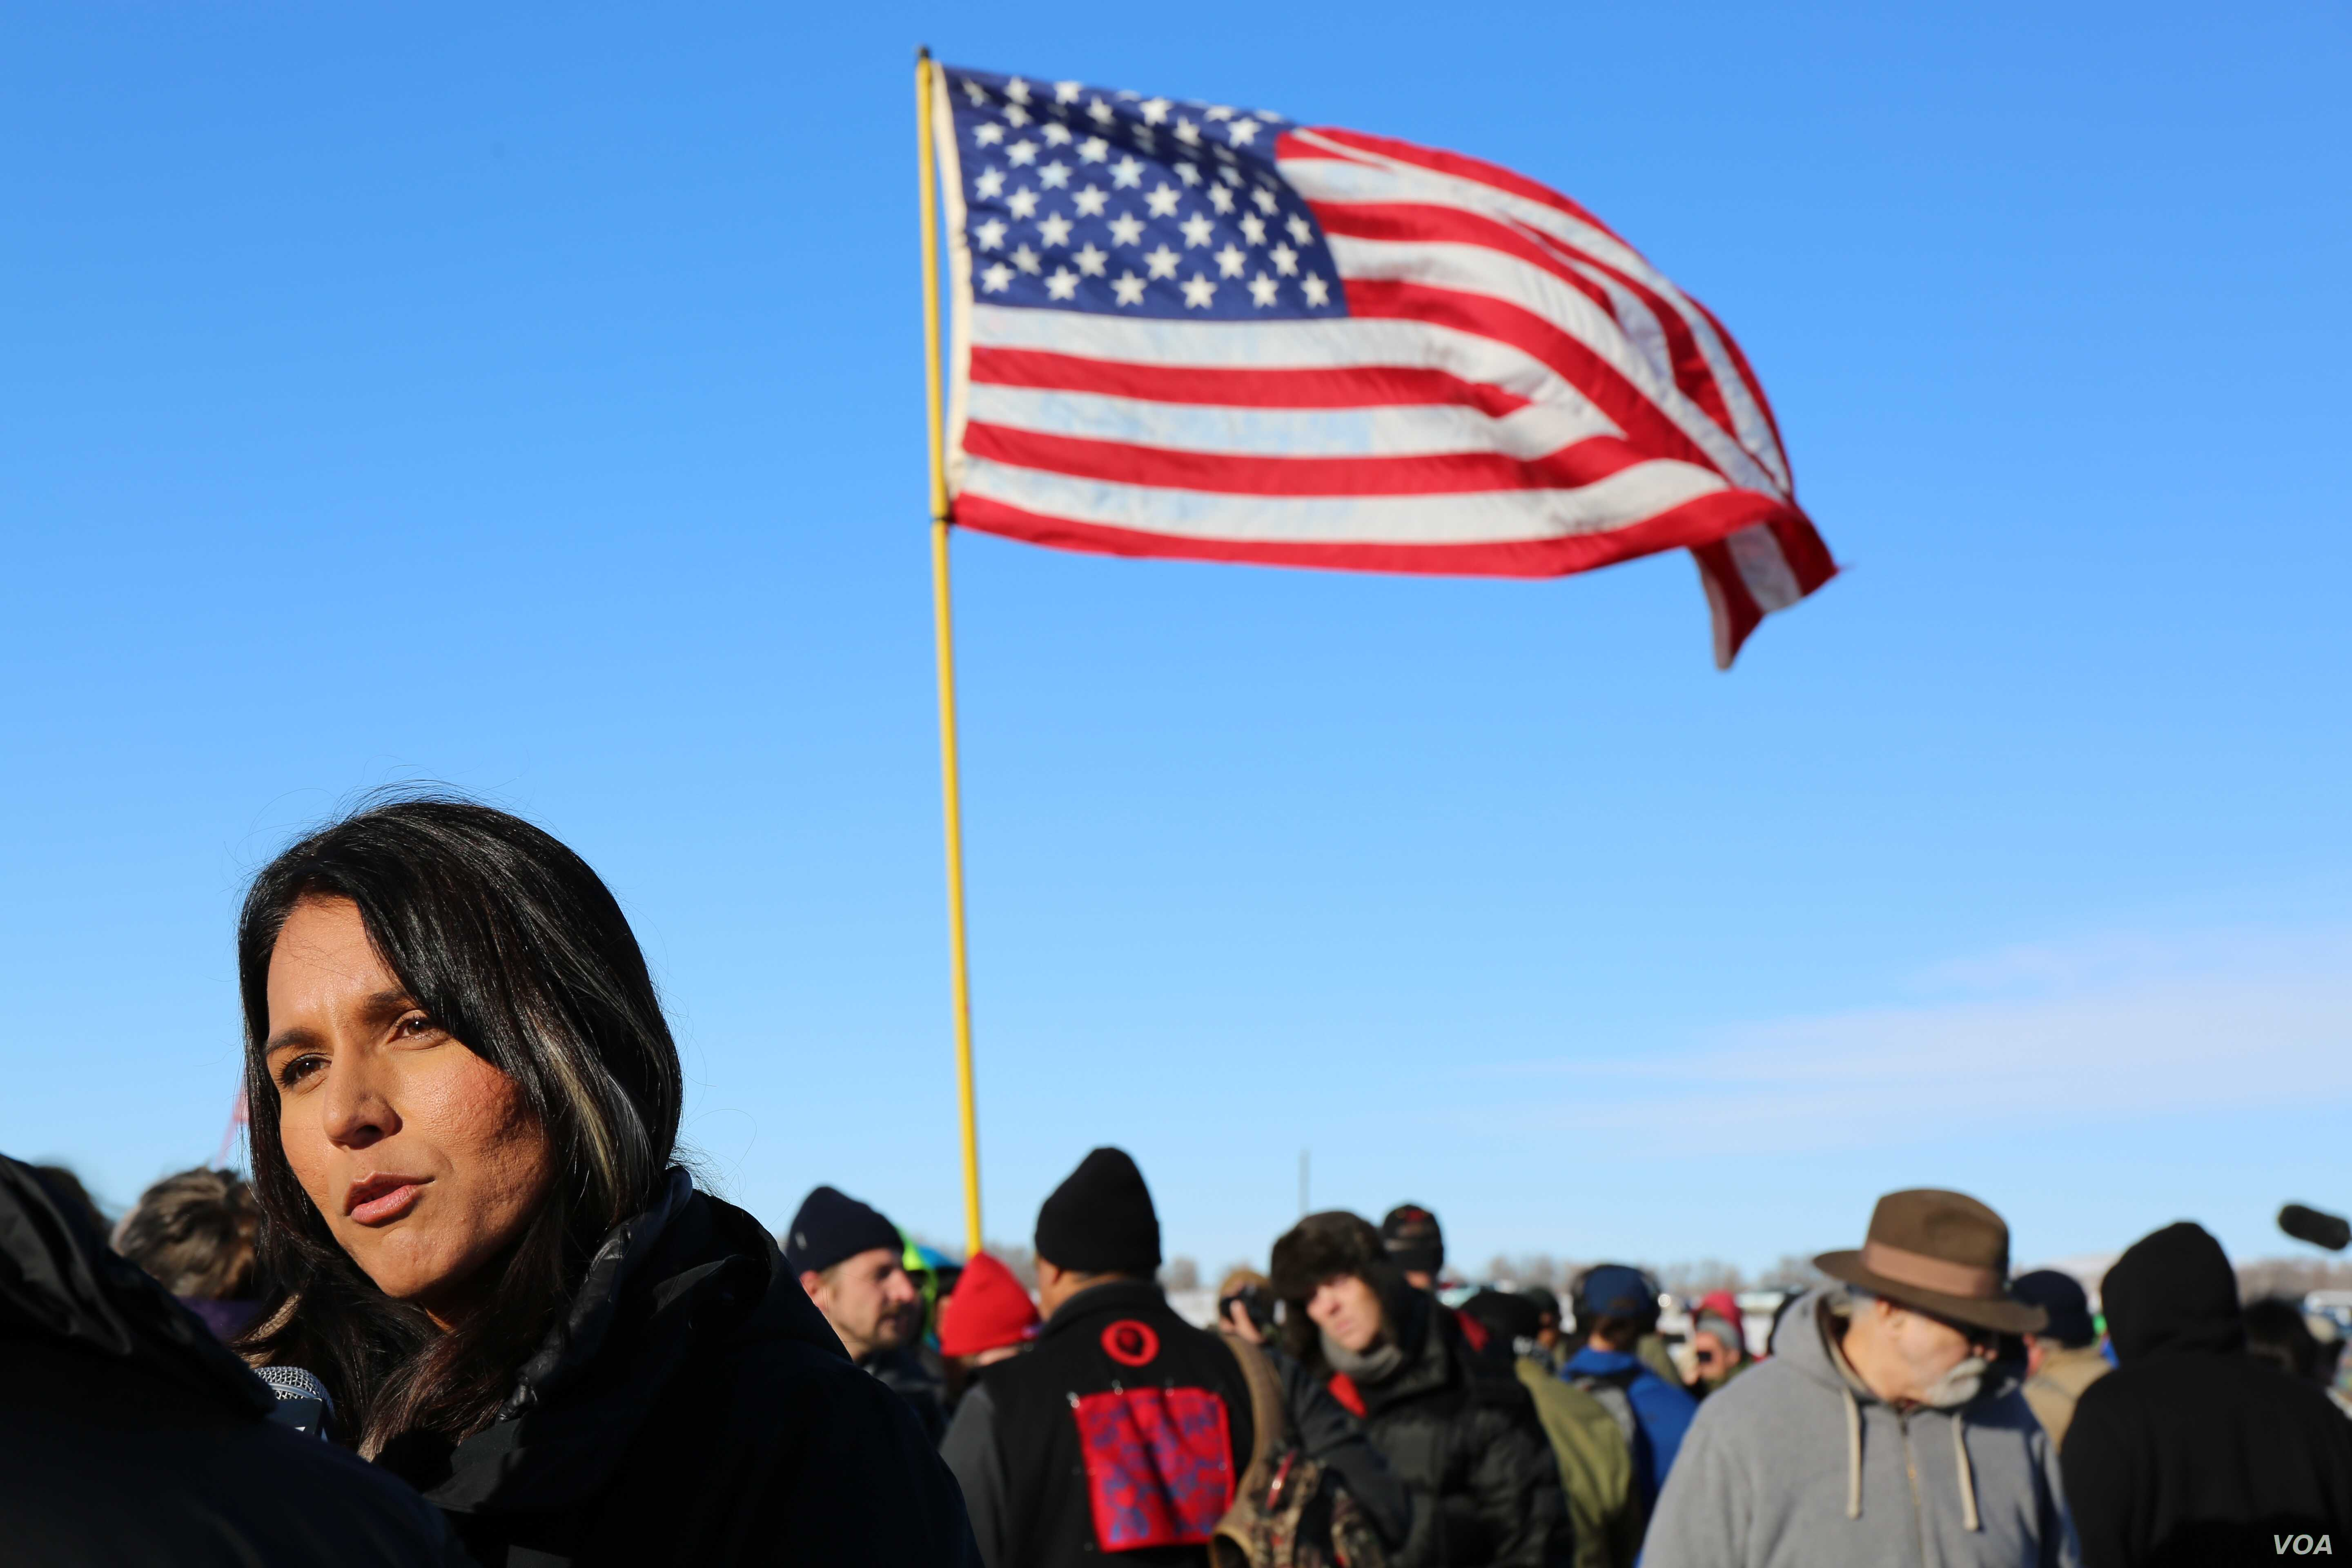 Hawaii Congresswoman Tulsi Gabbard speaks to the media after addressing veterans near the Standing Rock camp in North Dakota (E. Sarai/VOA)